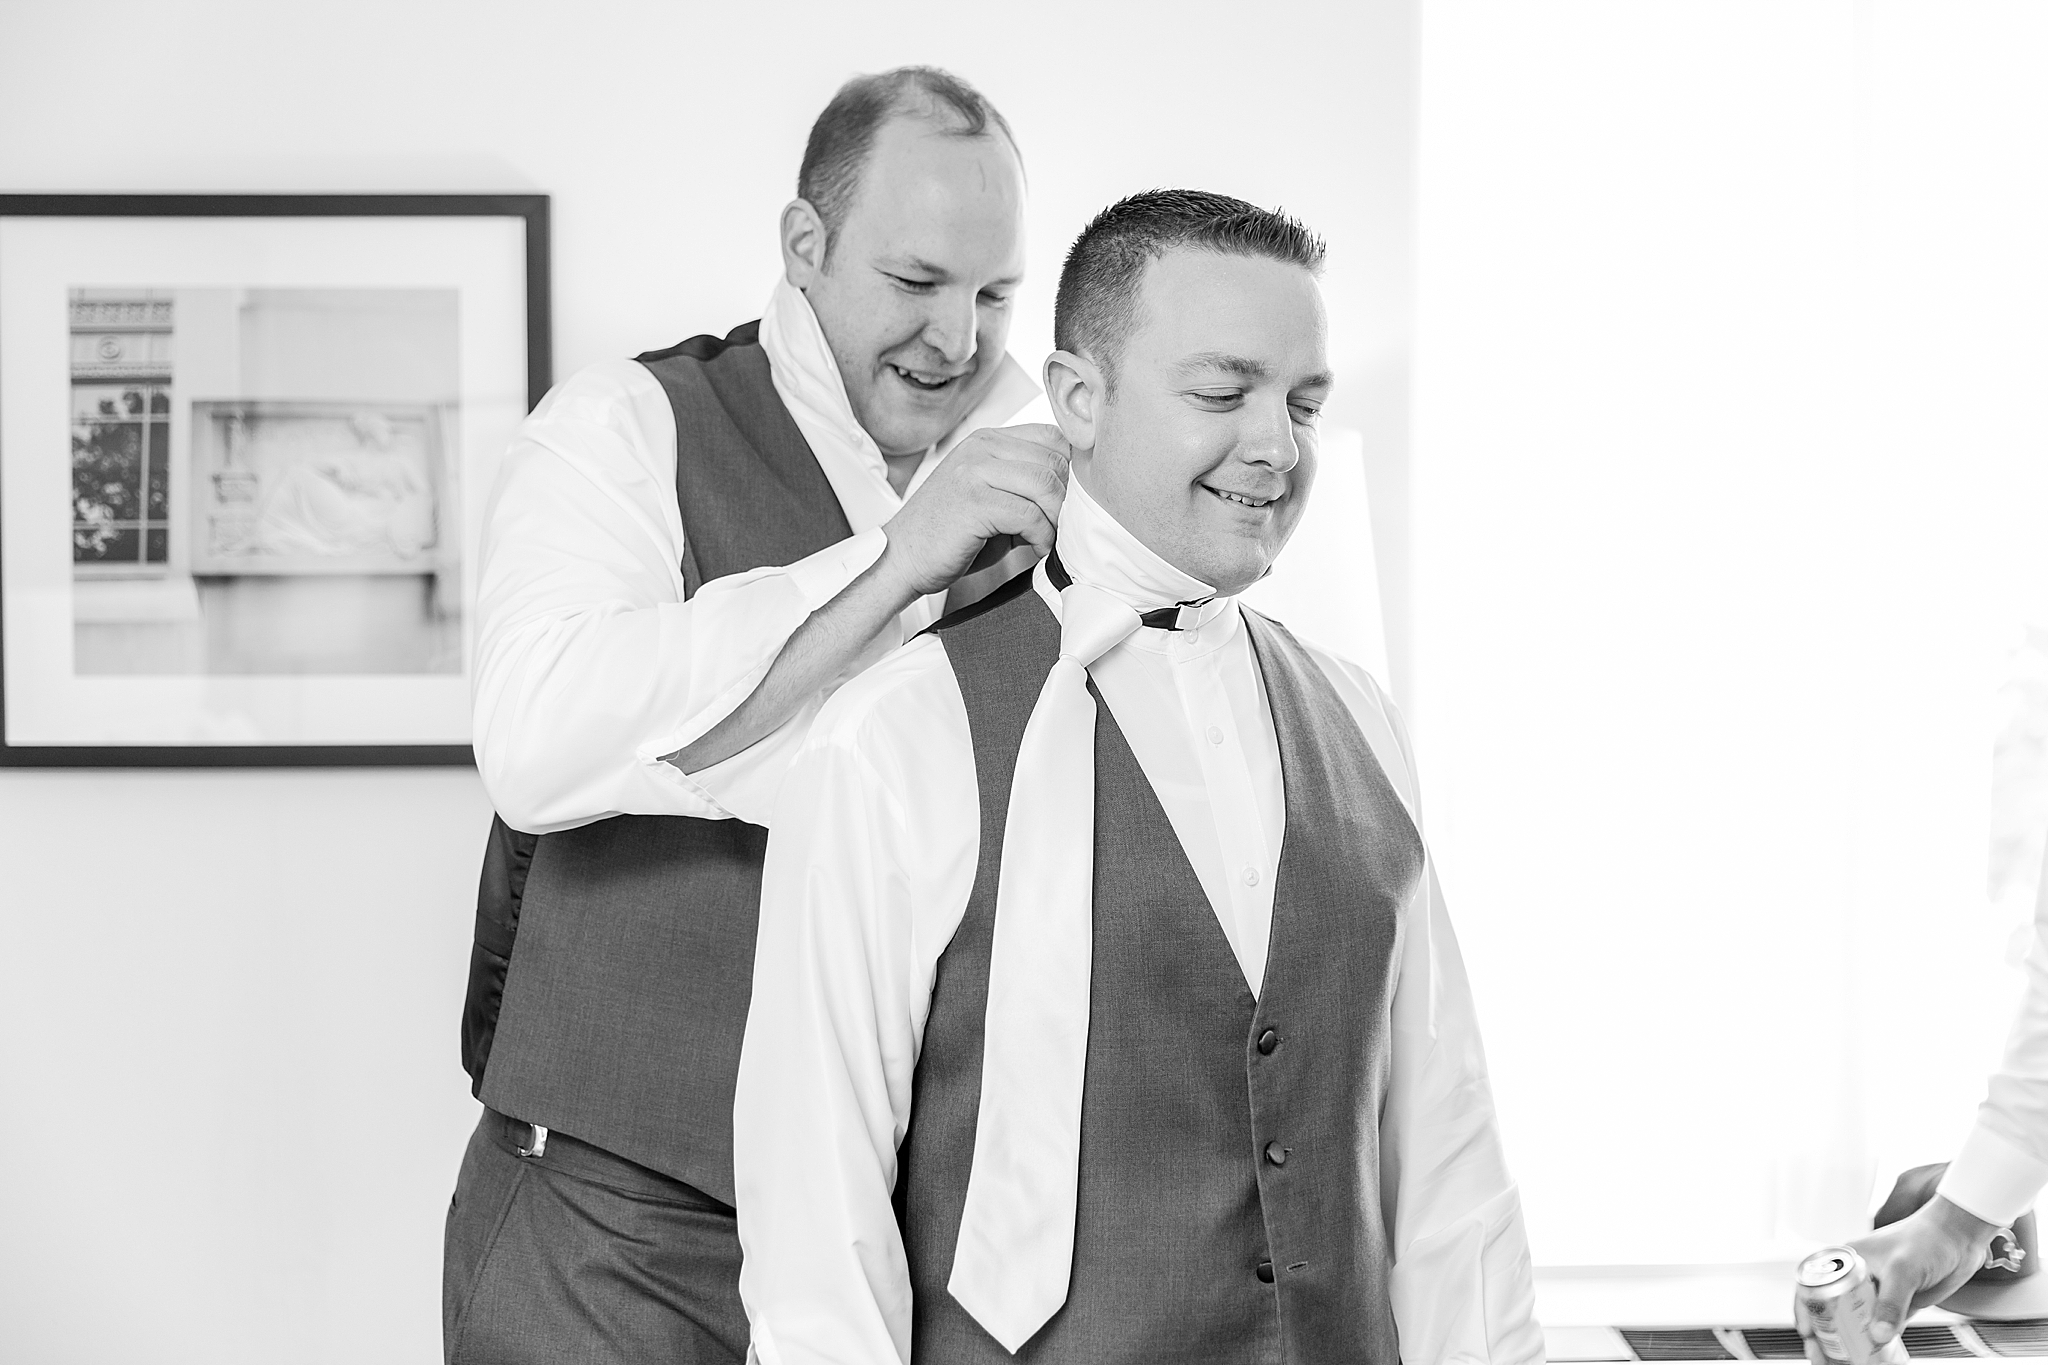 modern-romantic-wedding-photography-at-webers-in-ann-arbor-michigan-by-courtney-carolyn-photography_0005.jpg